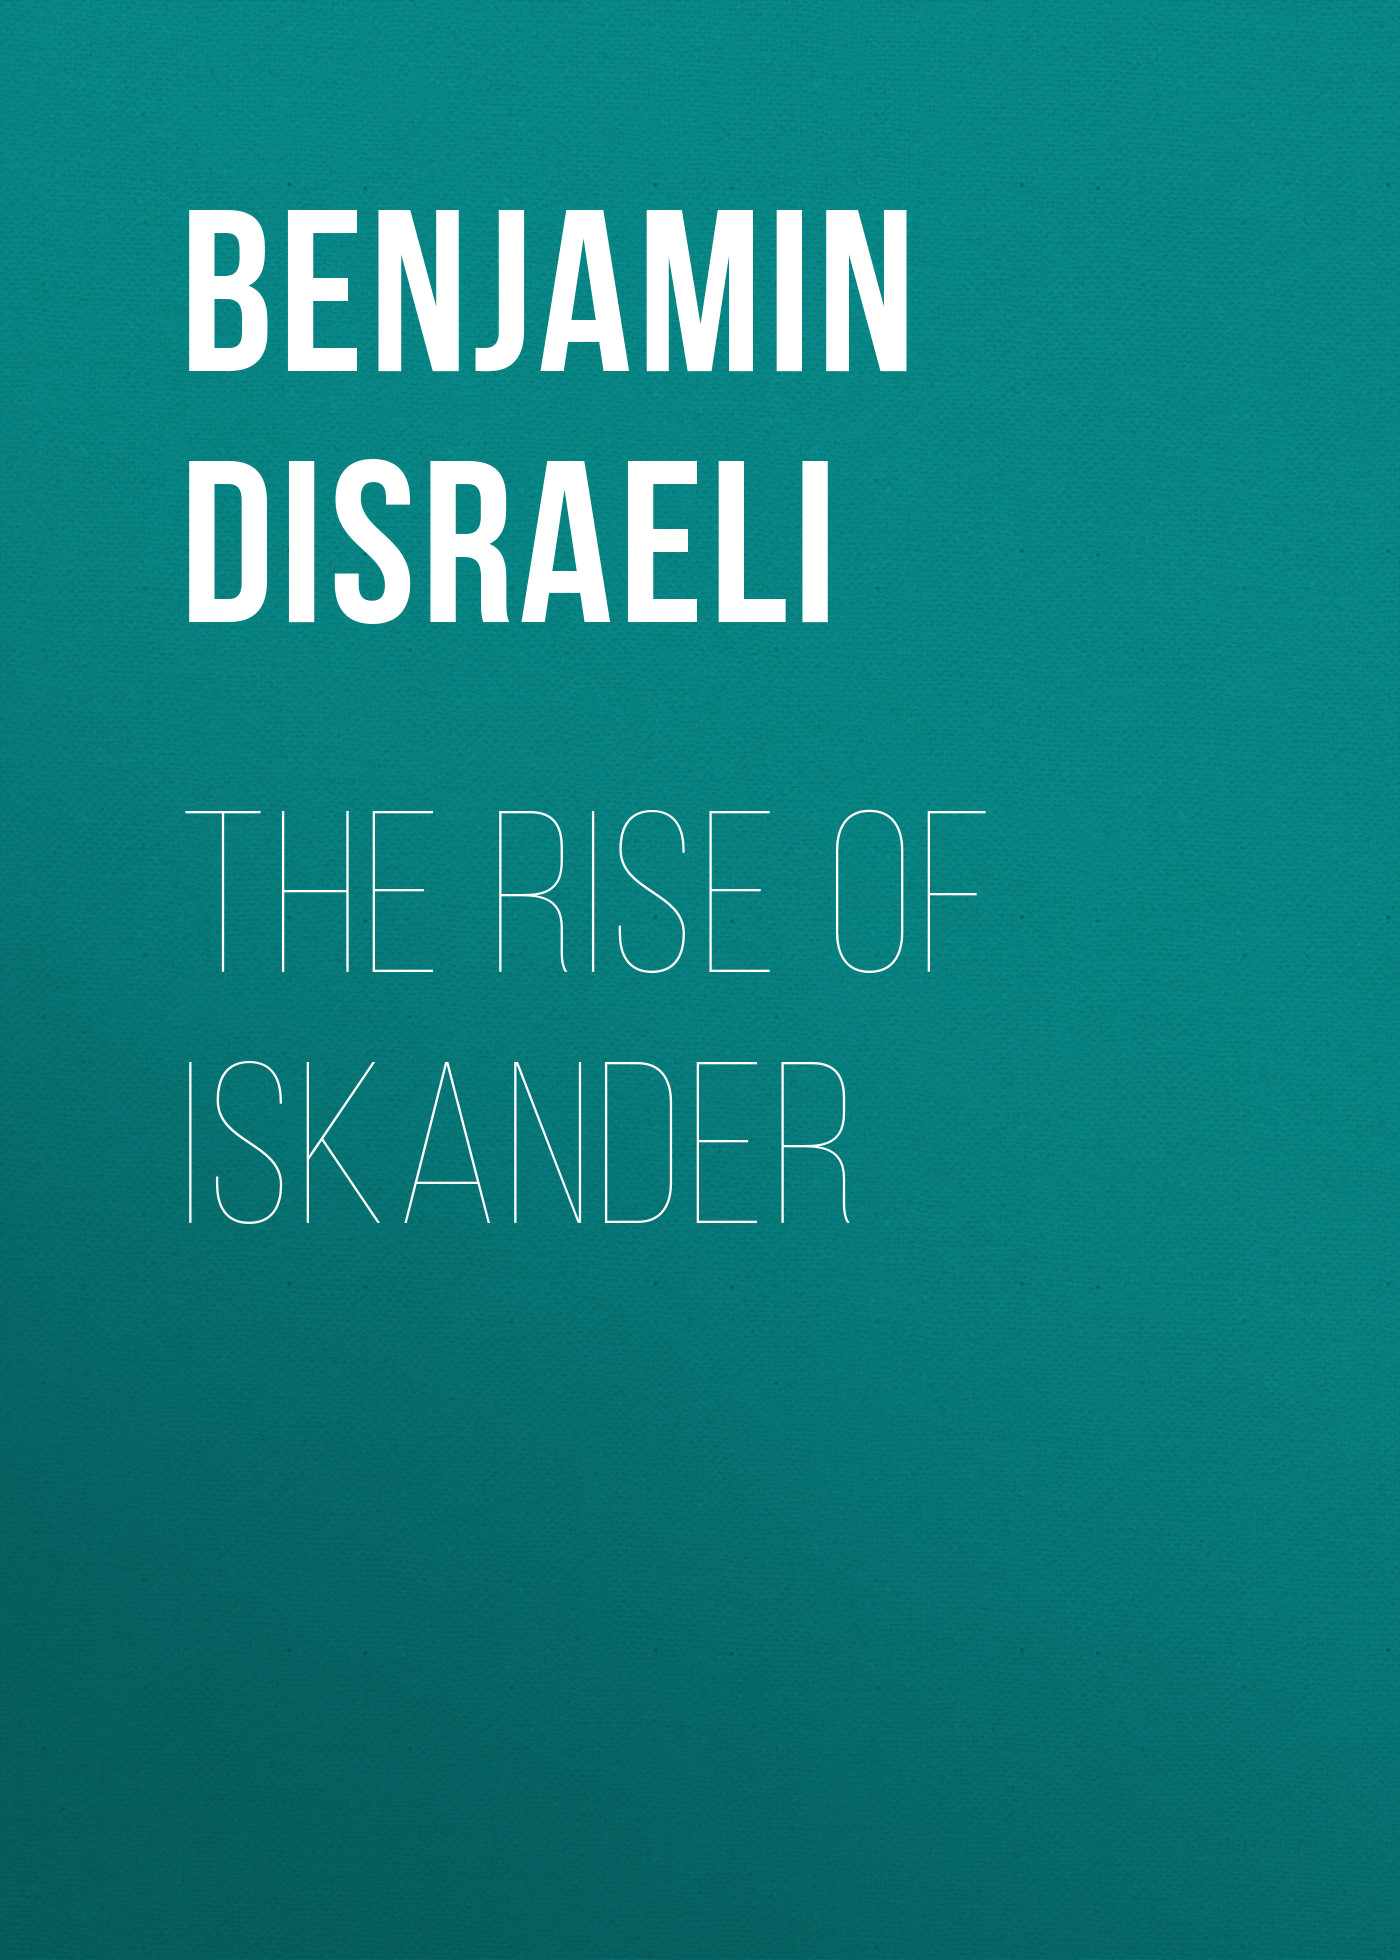 Benjamin Disraeli The Rise of Iskander